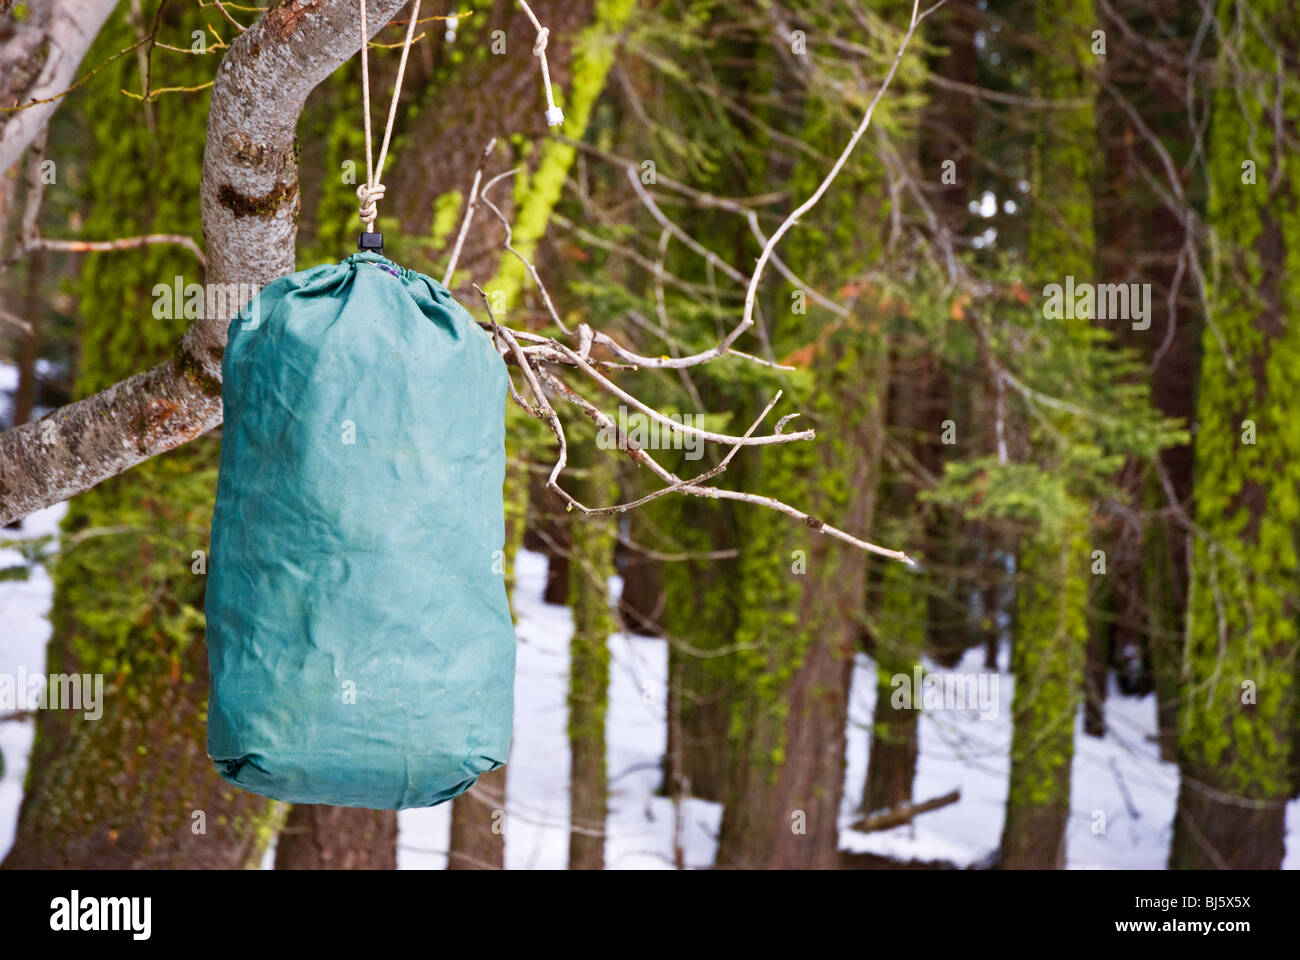 Ursack bear-proof food storage container hanging from a branch, Sequoia National Park, California - Stock Image